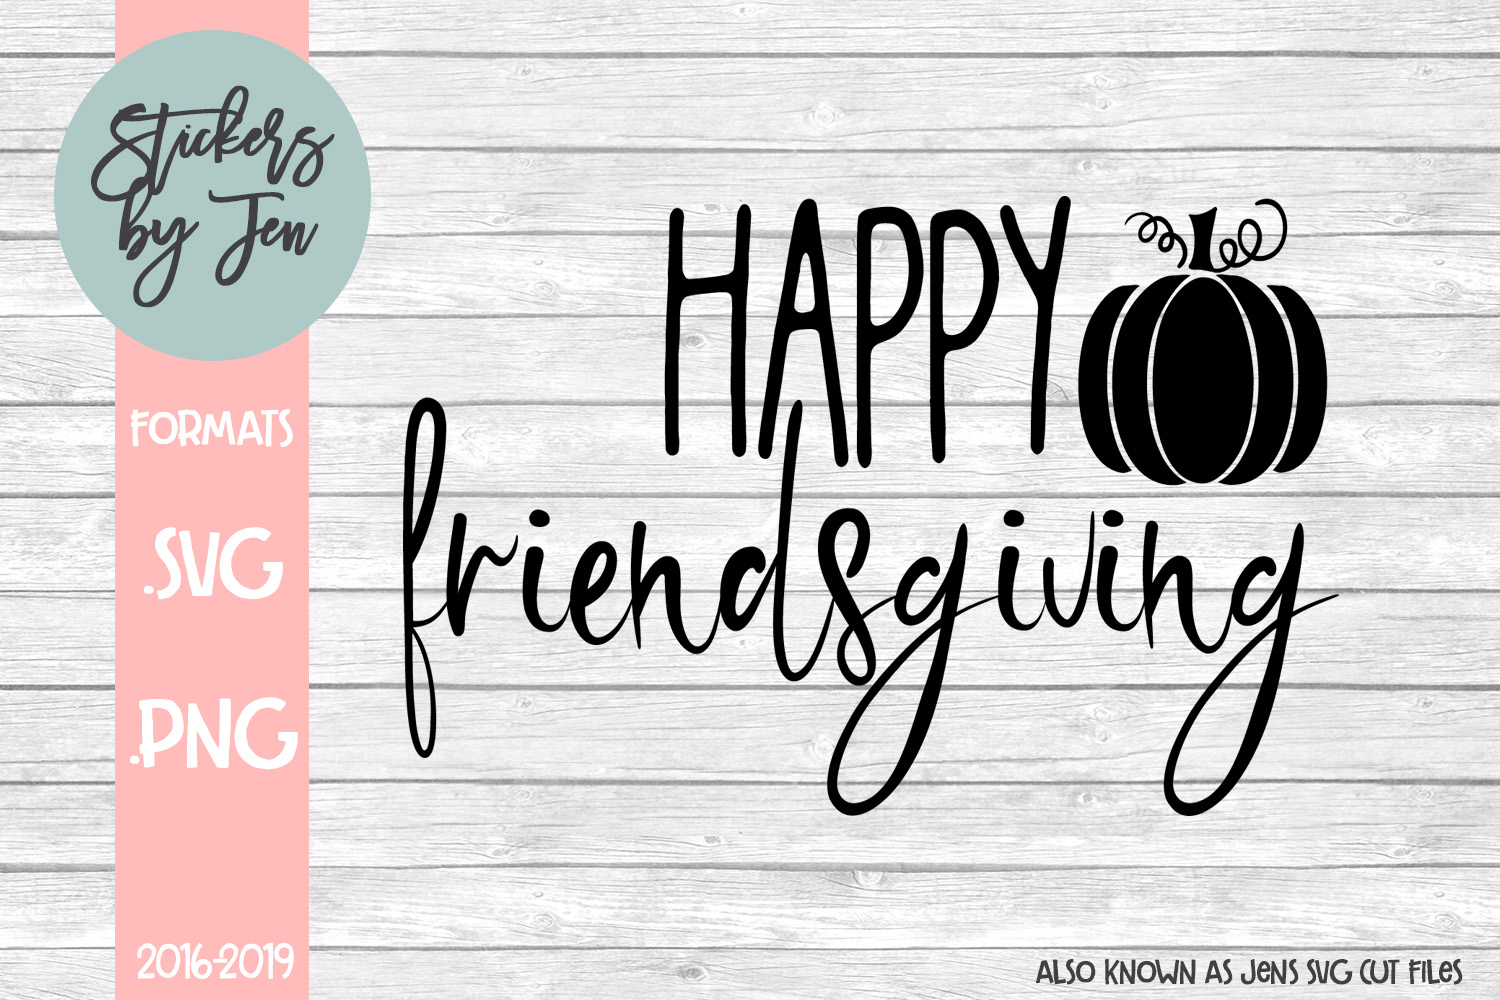 Download Free Happy Friendsgiving Svg Graphic By Jens Svg Cut Files Creative for Cricut Explore, Silhouette and other cutting machines.